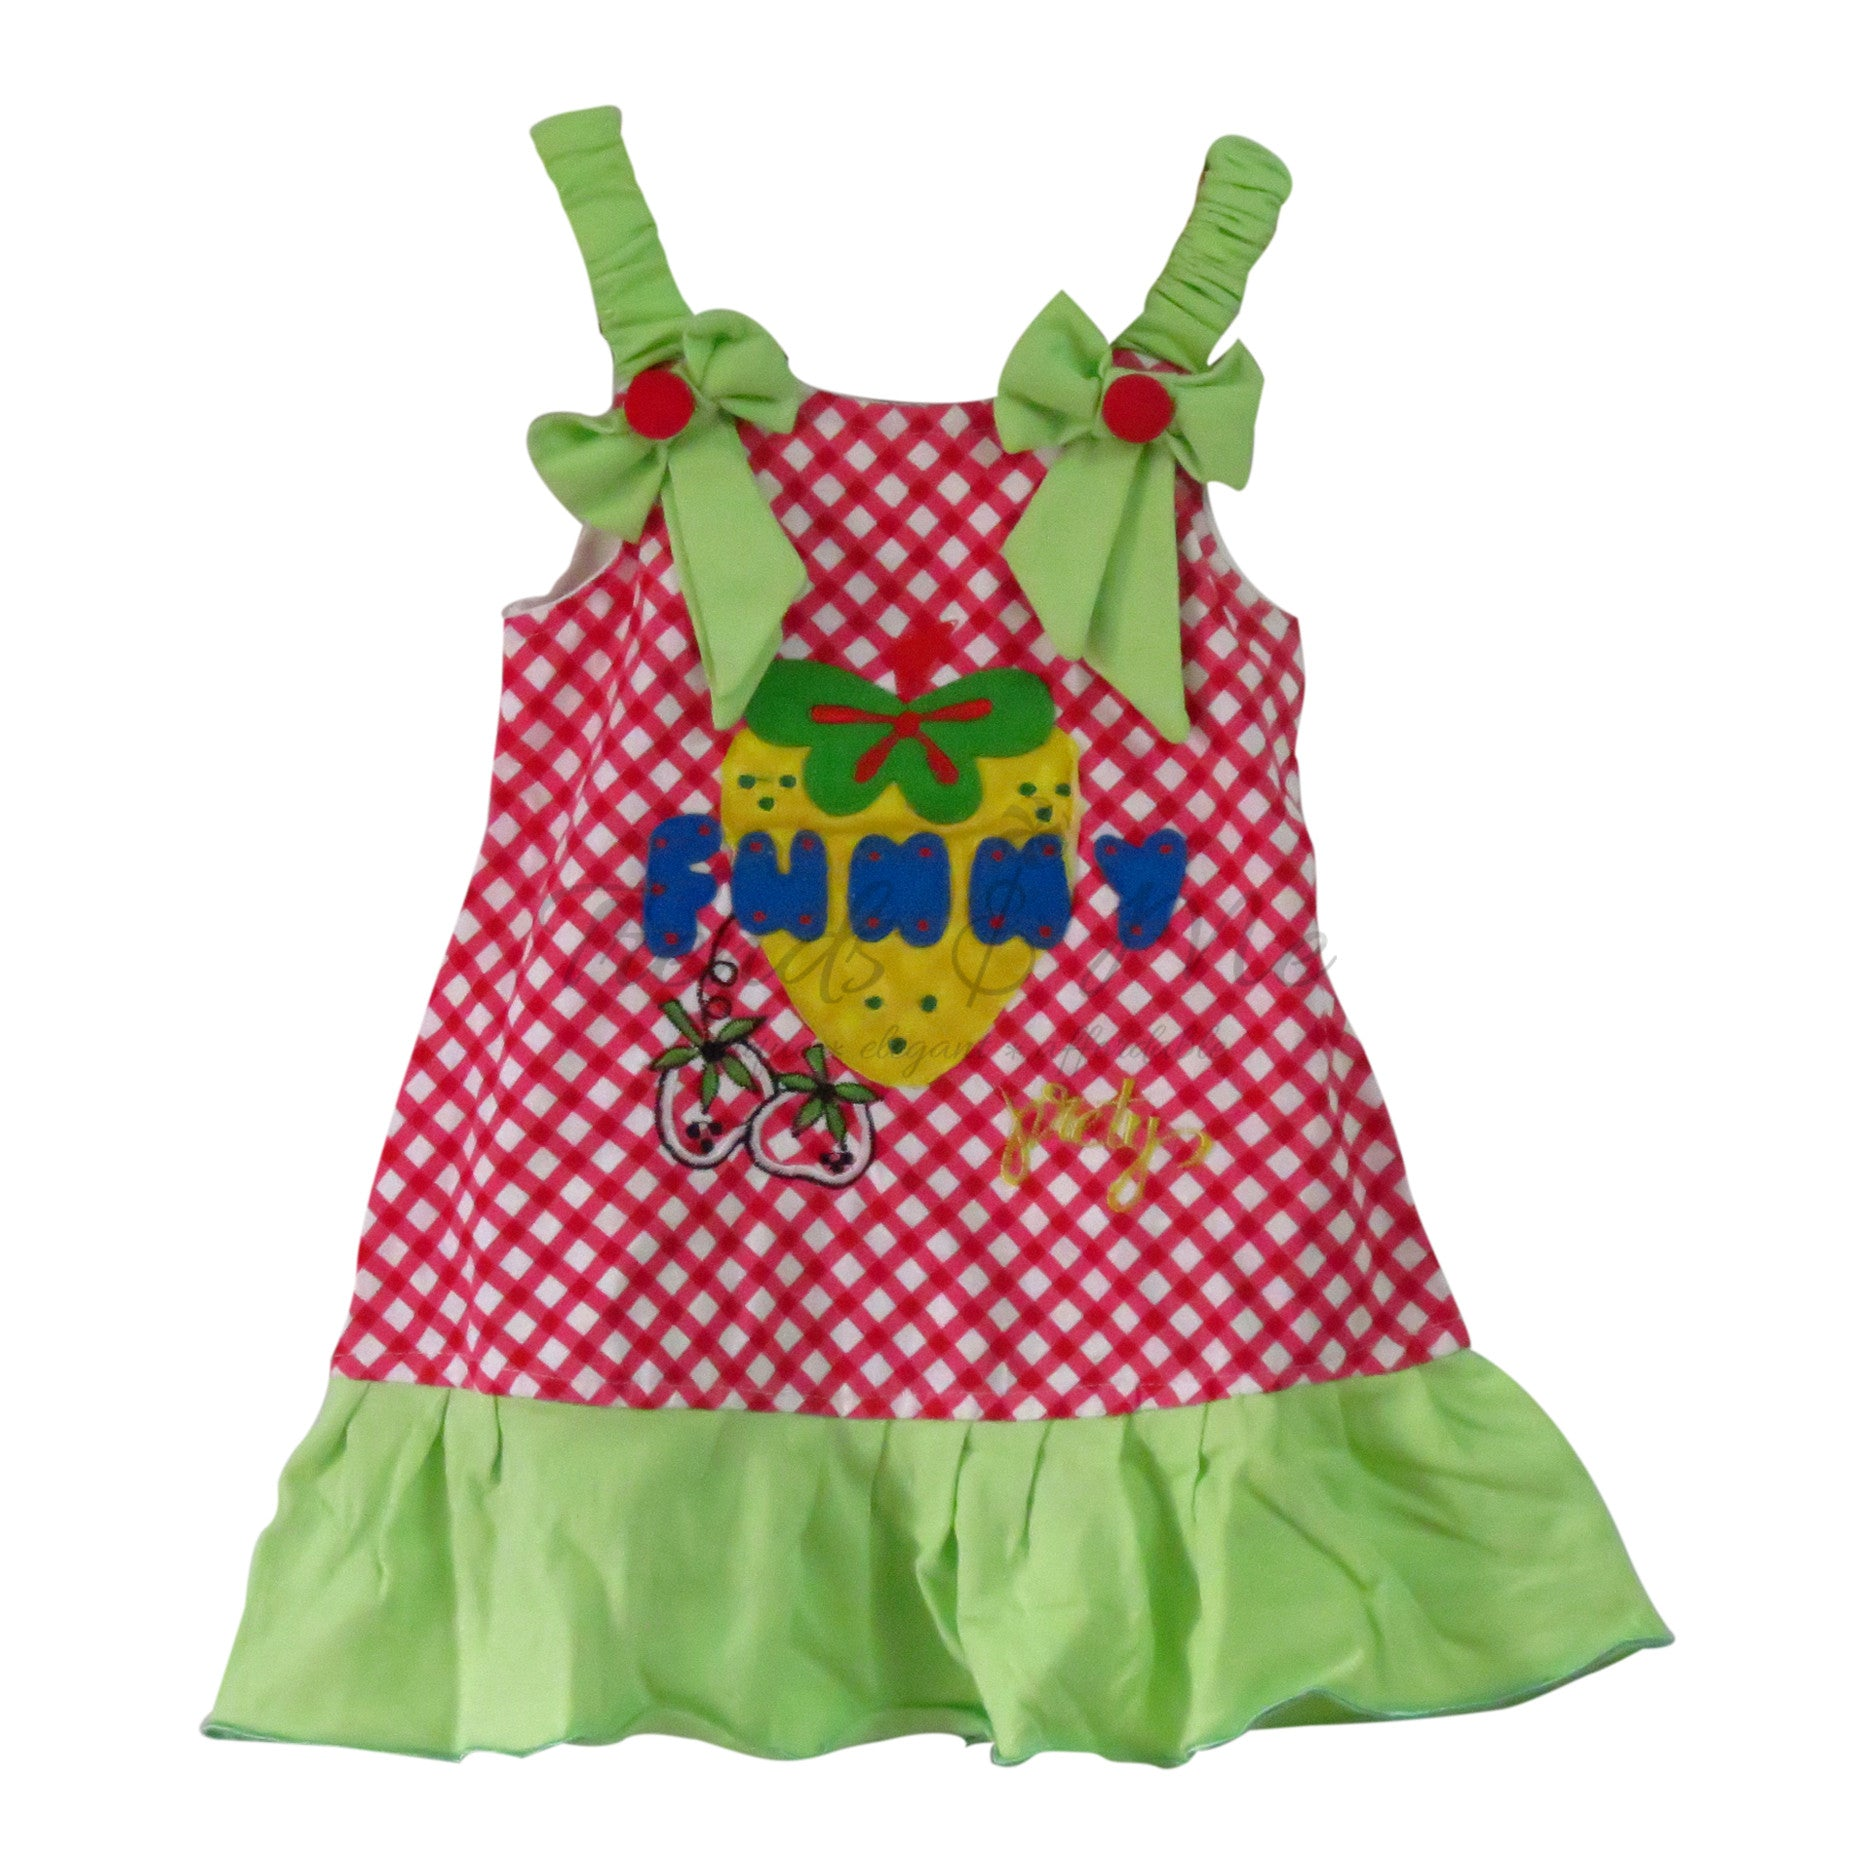 de3b47475 Green and Red Spaghetti Dress - Trends and Me